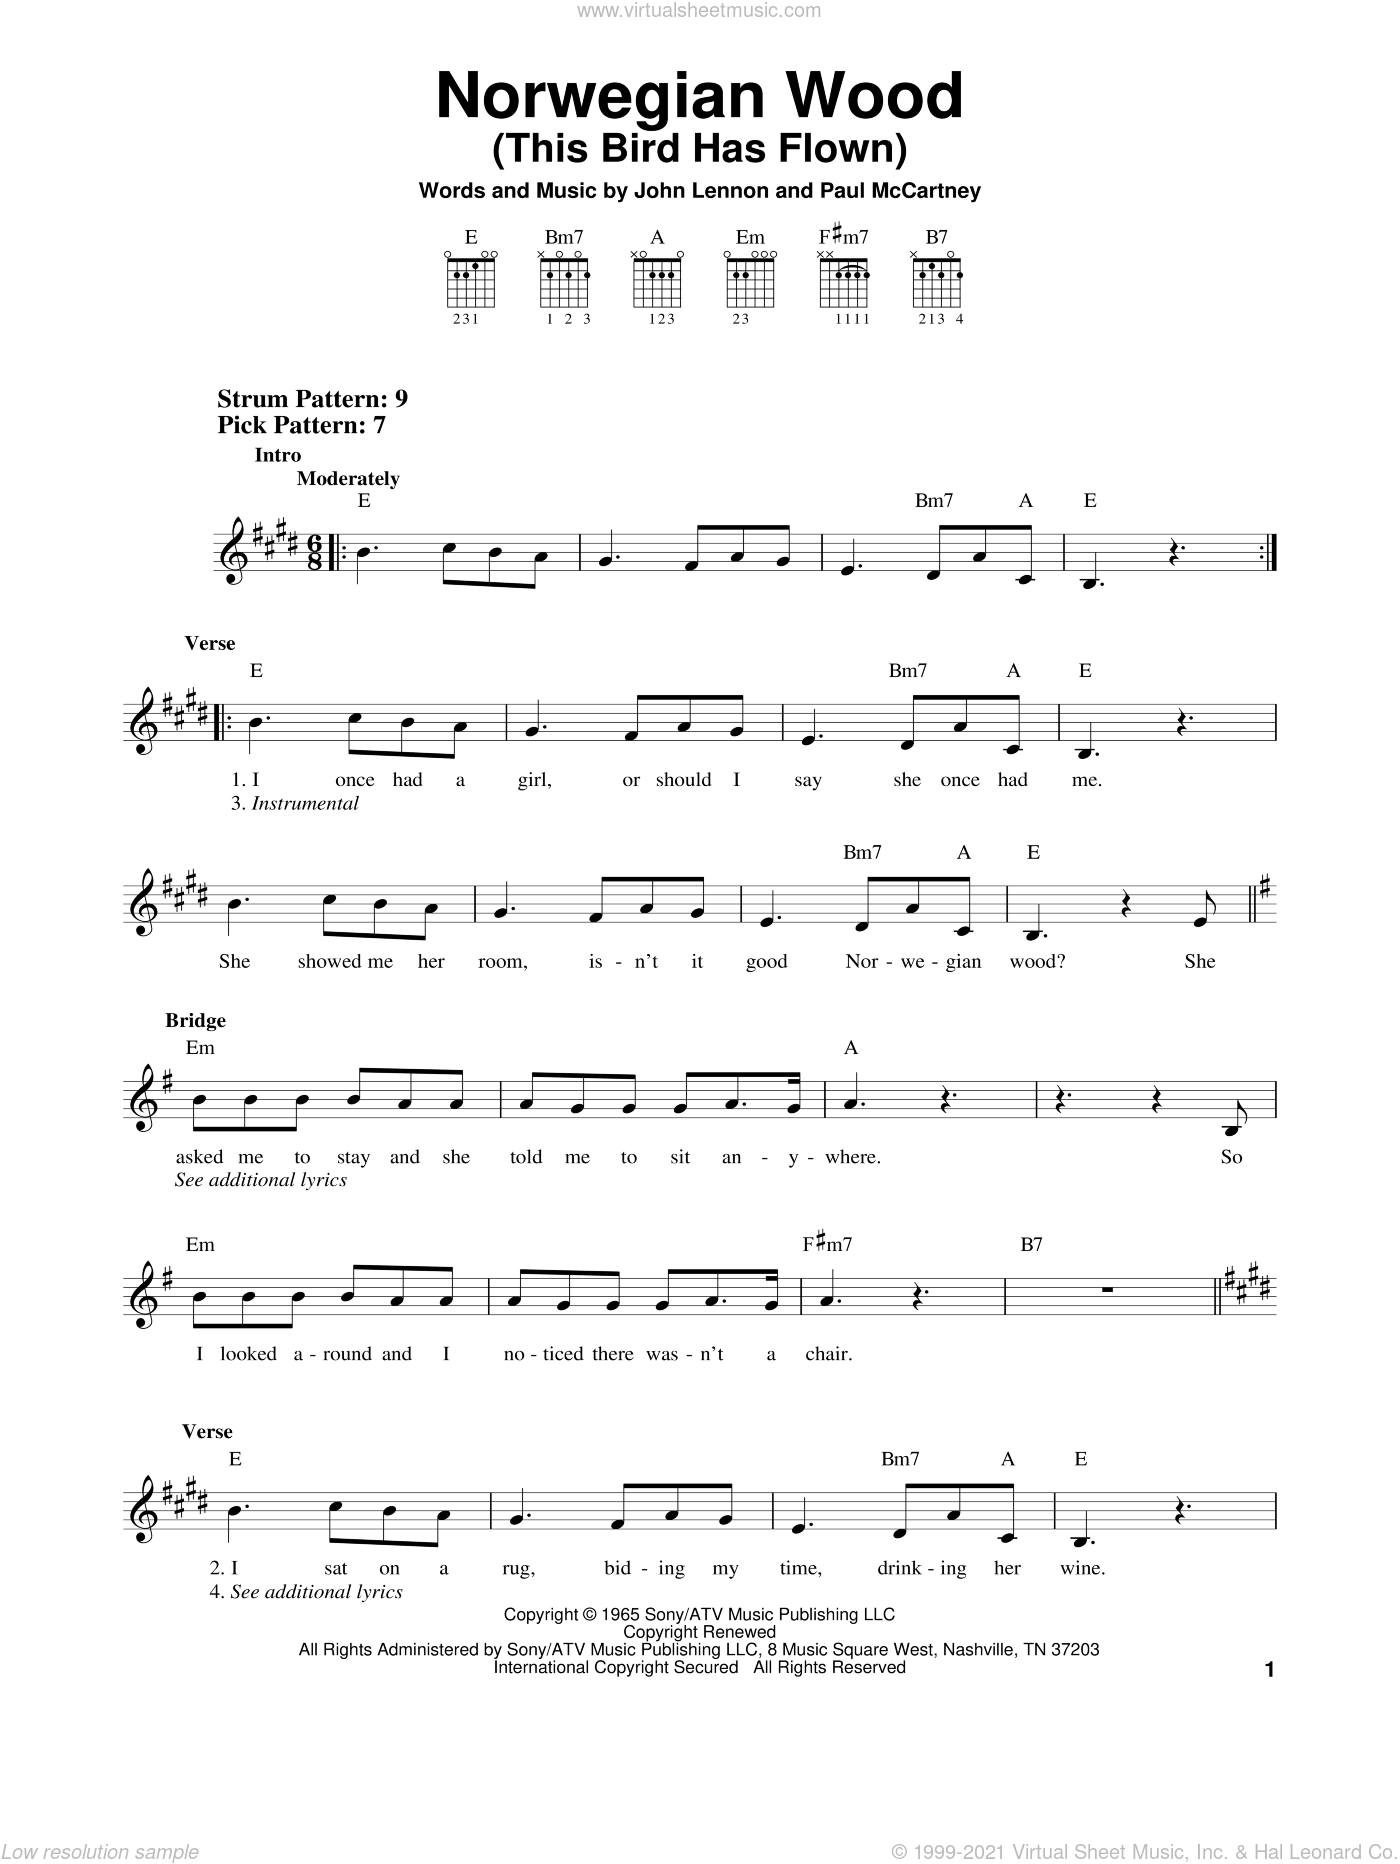 Norwegian Wood (This Bird Has Flown) sheet music for guitar solo (chords) by The Beatles, John Lennon and Paul McCartney, easy guitar (chords). Score Image Preview.